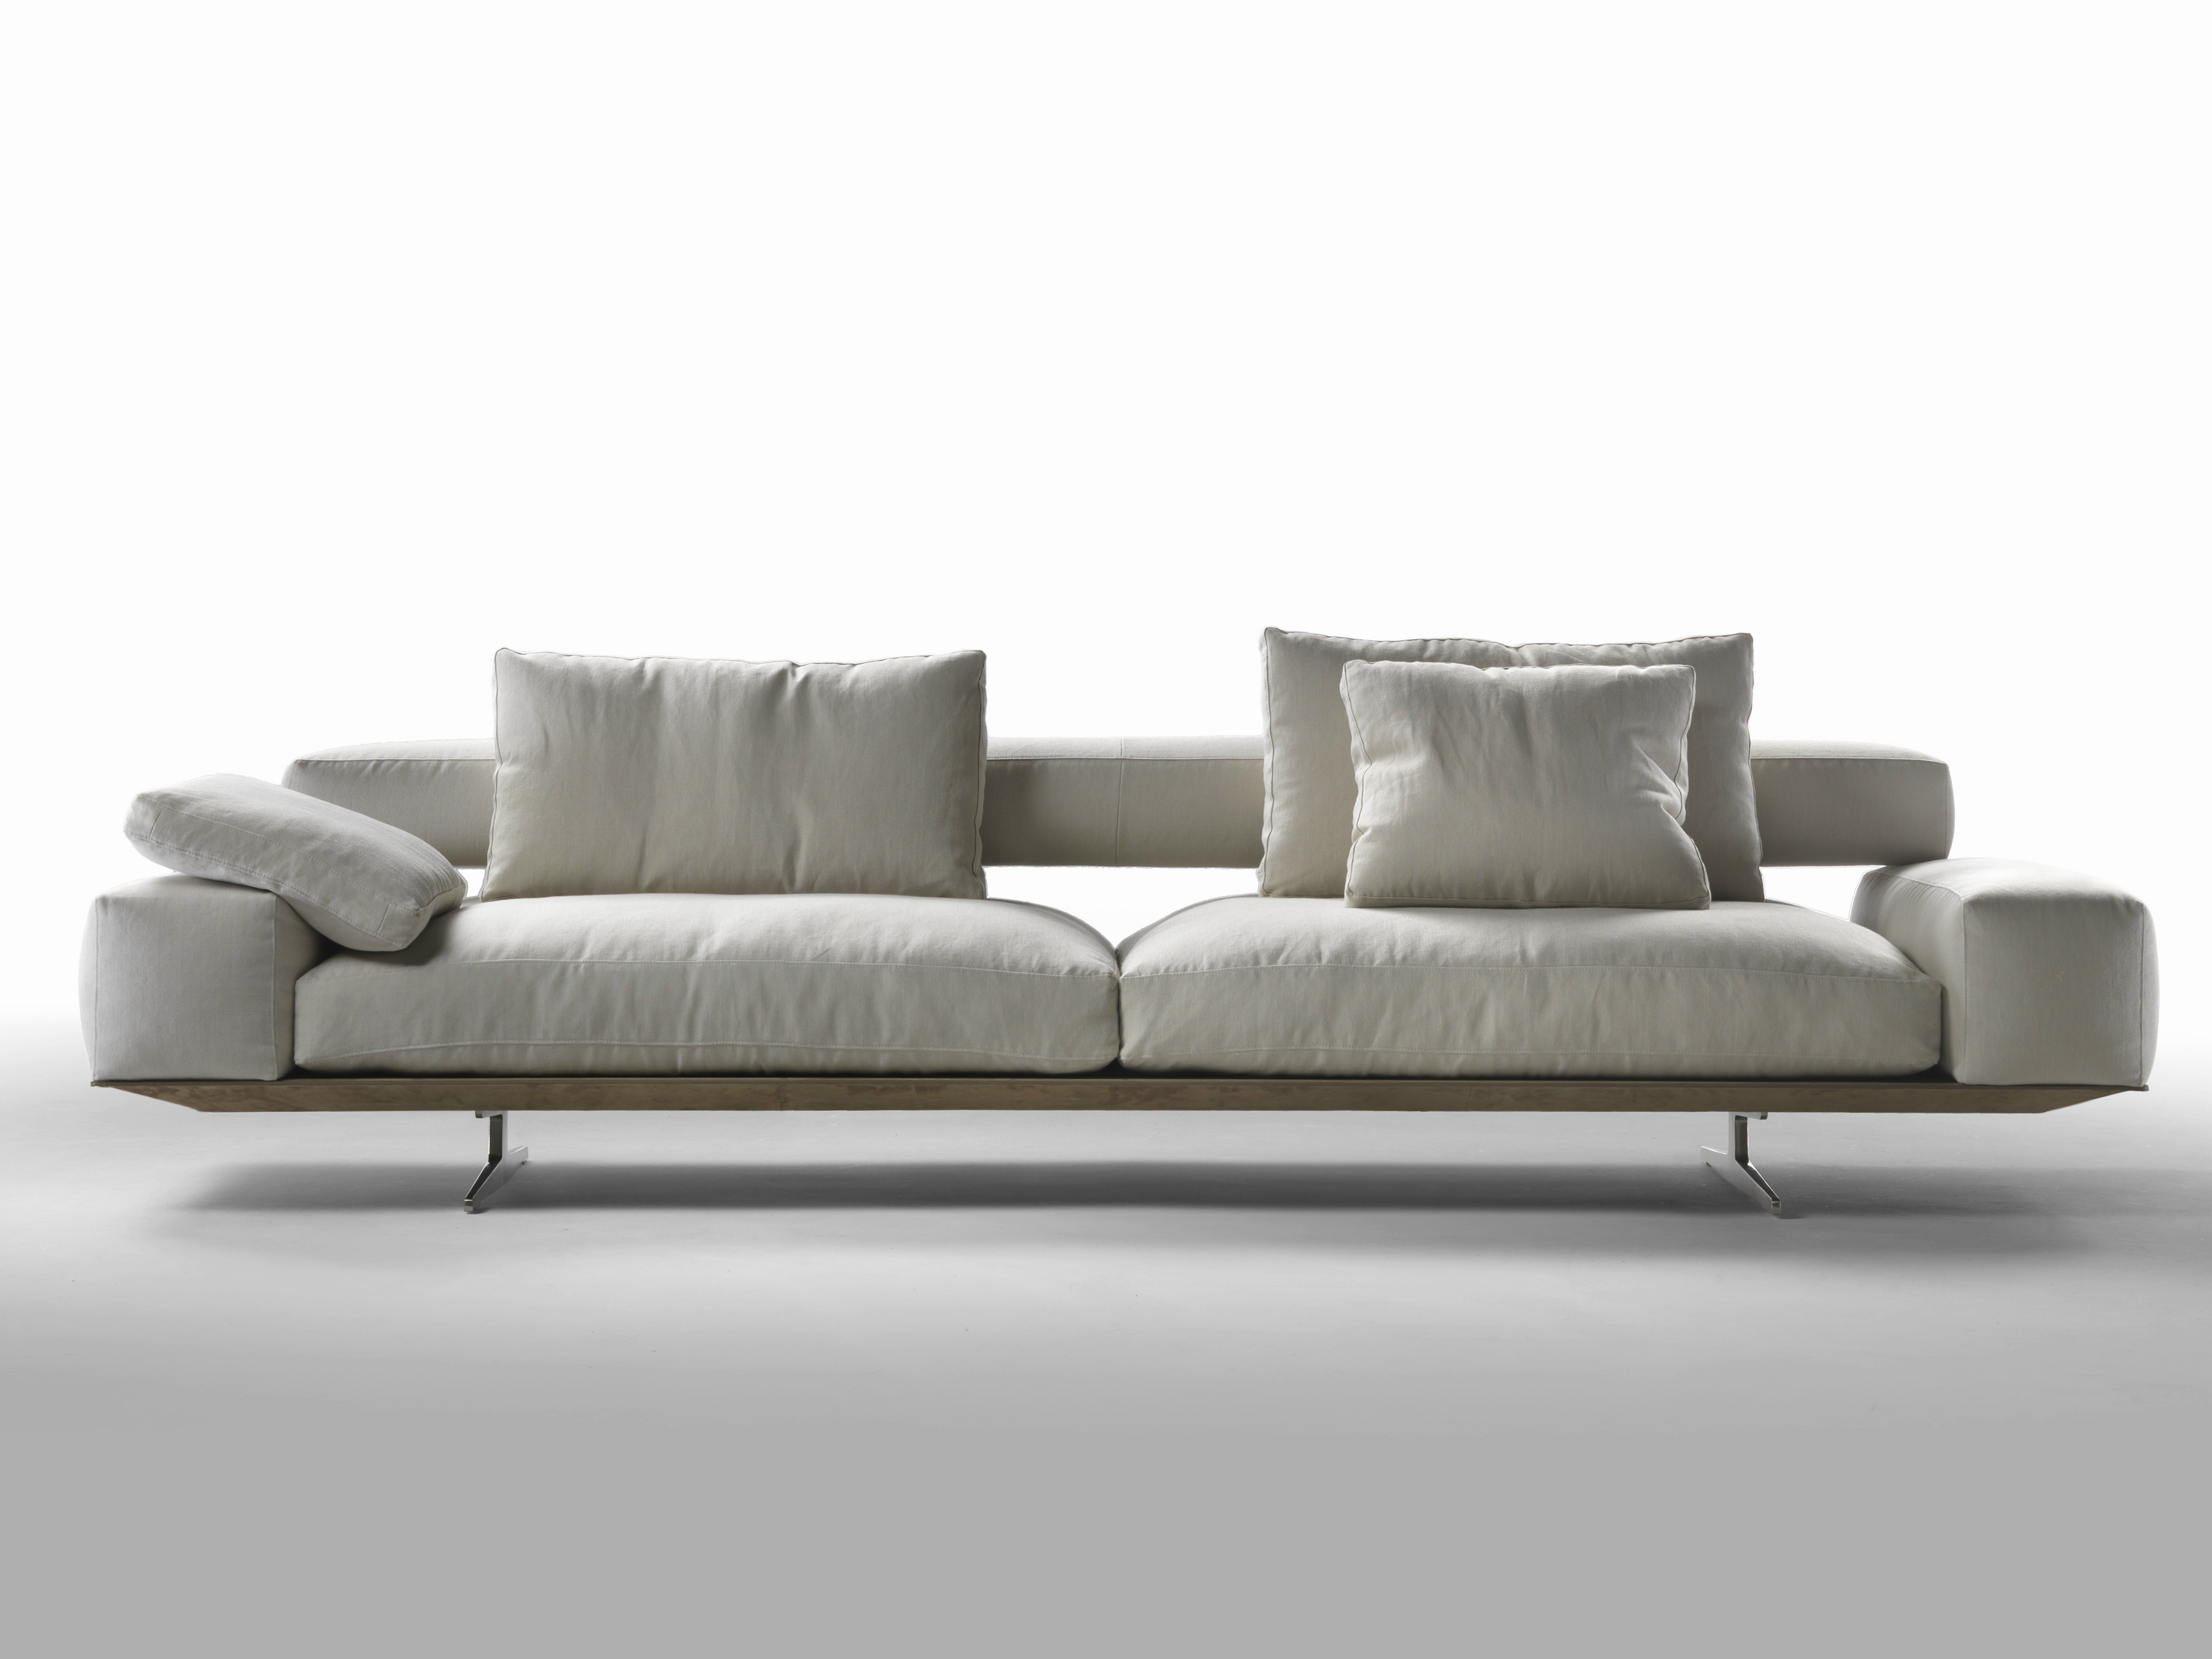 Wing Sofa By Antonio Citterio For Flexform Sohomod Blog